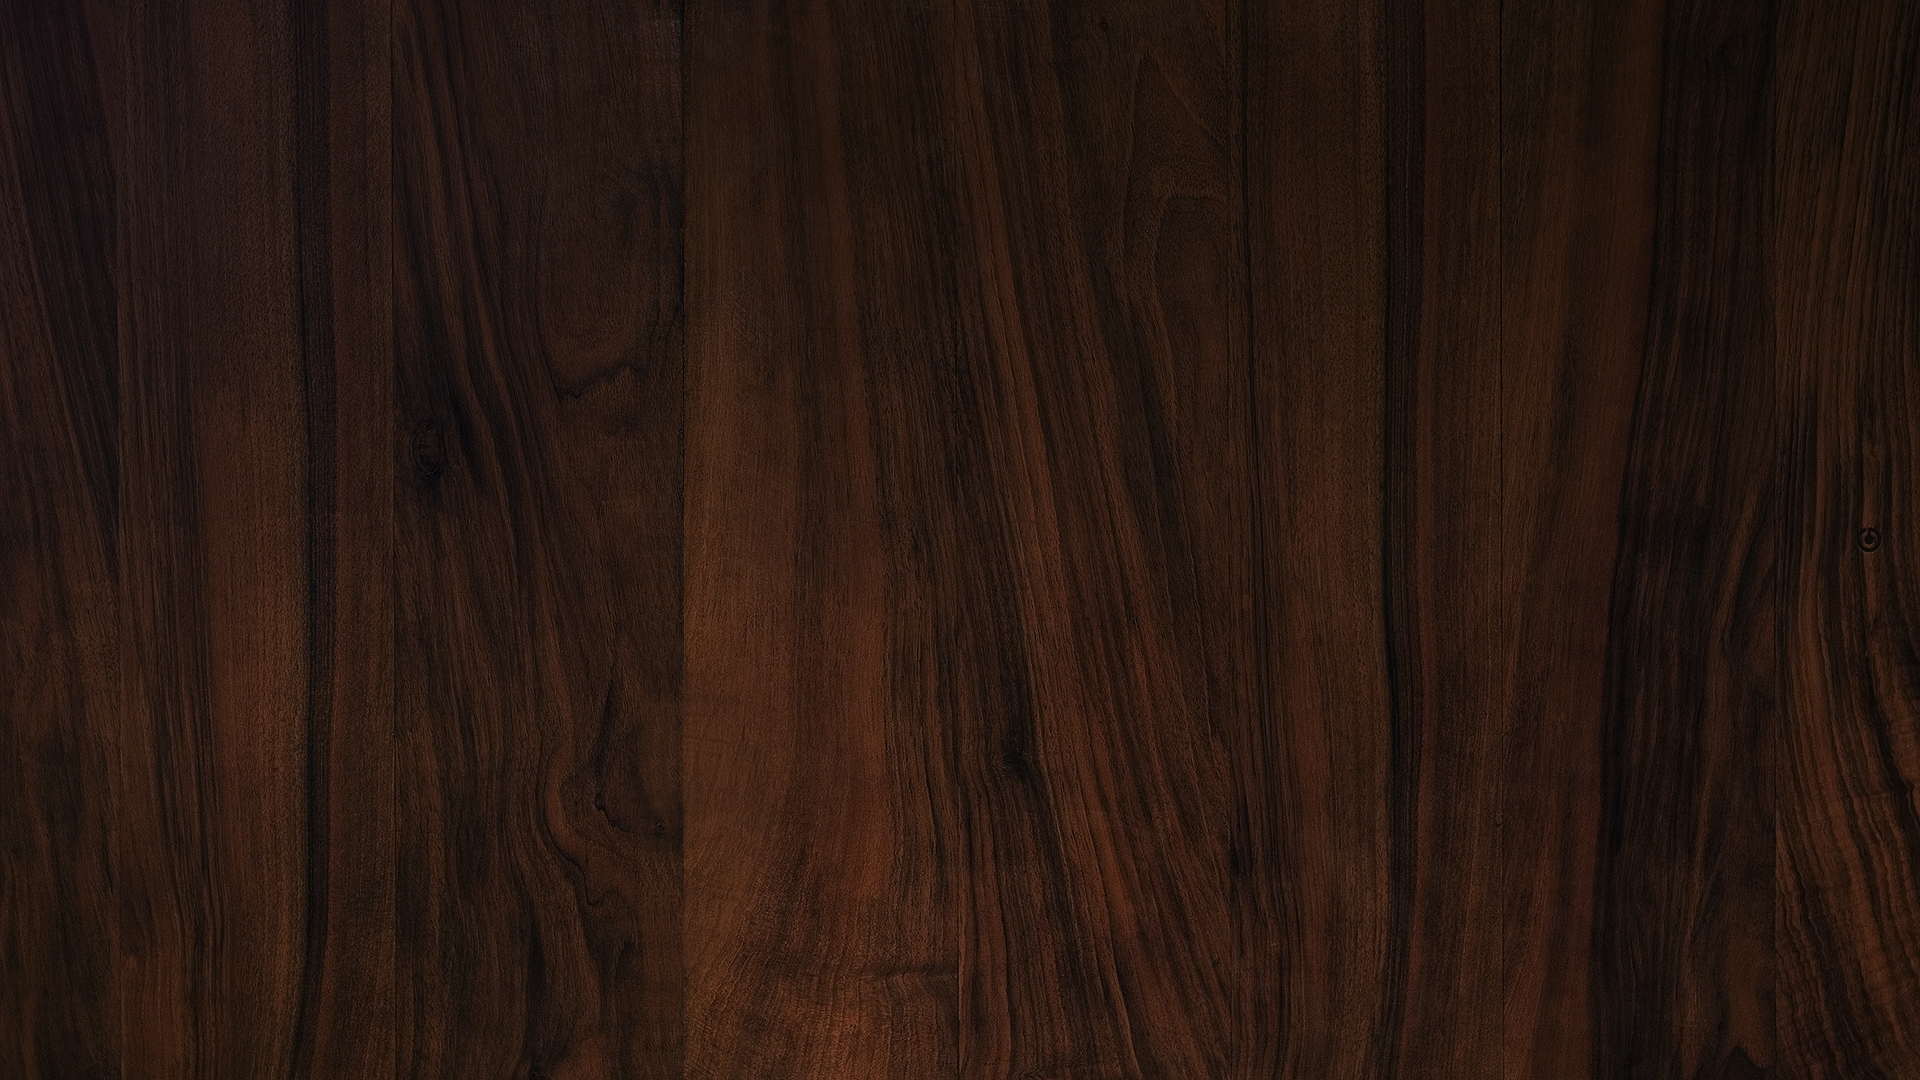 Wood wallpaper   HD Wallpapers 1920x1080